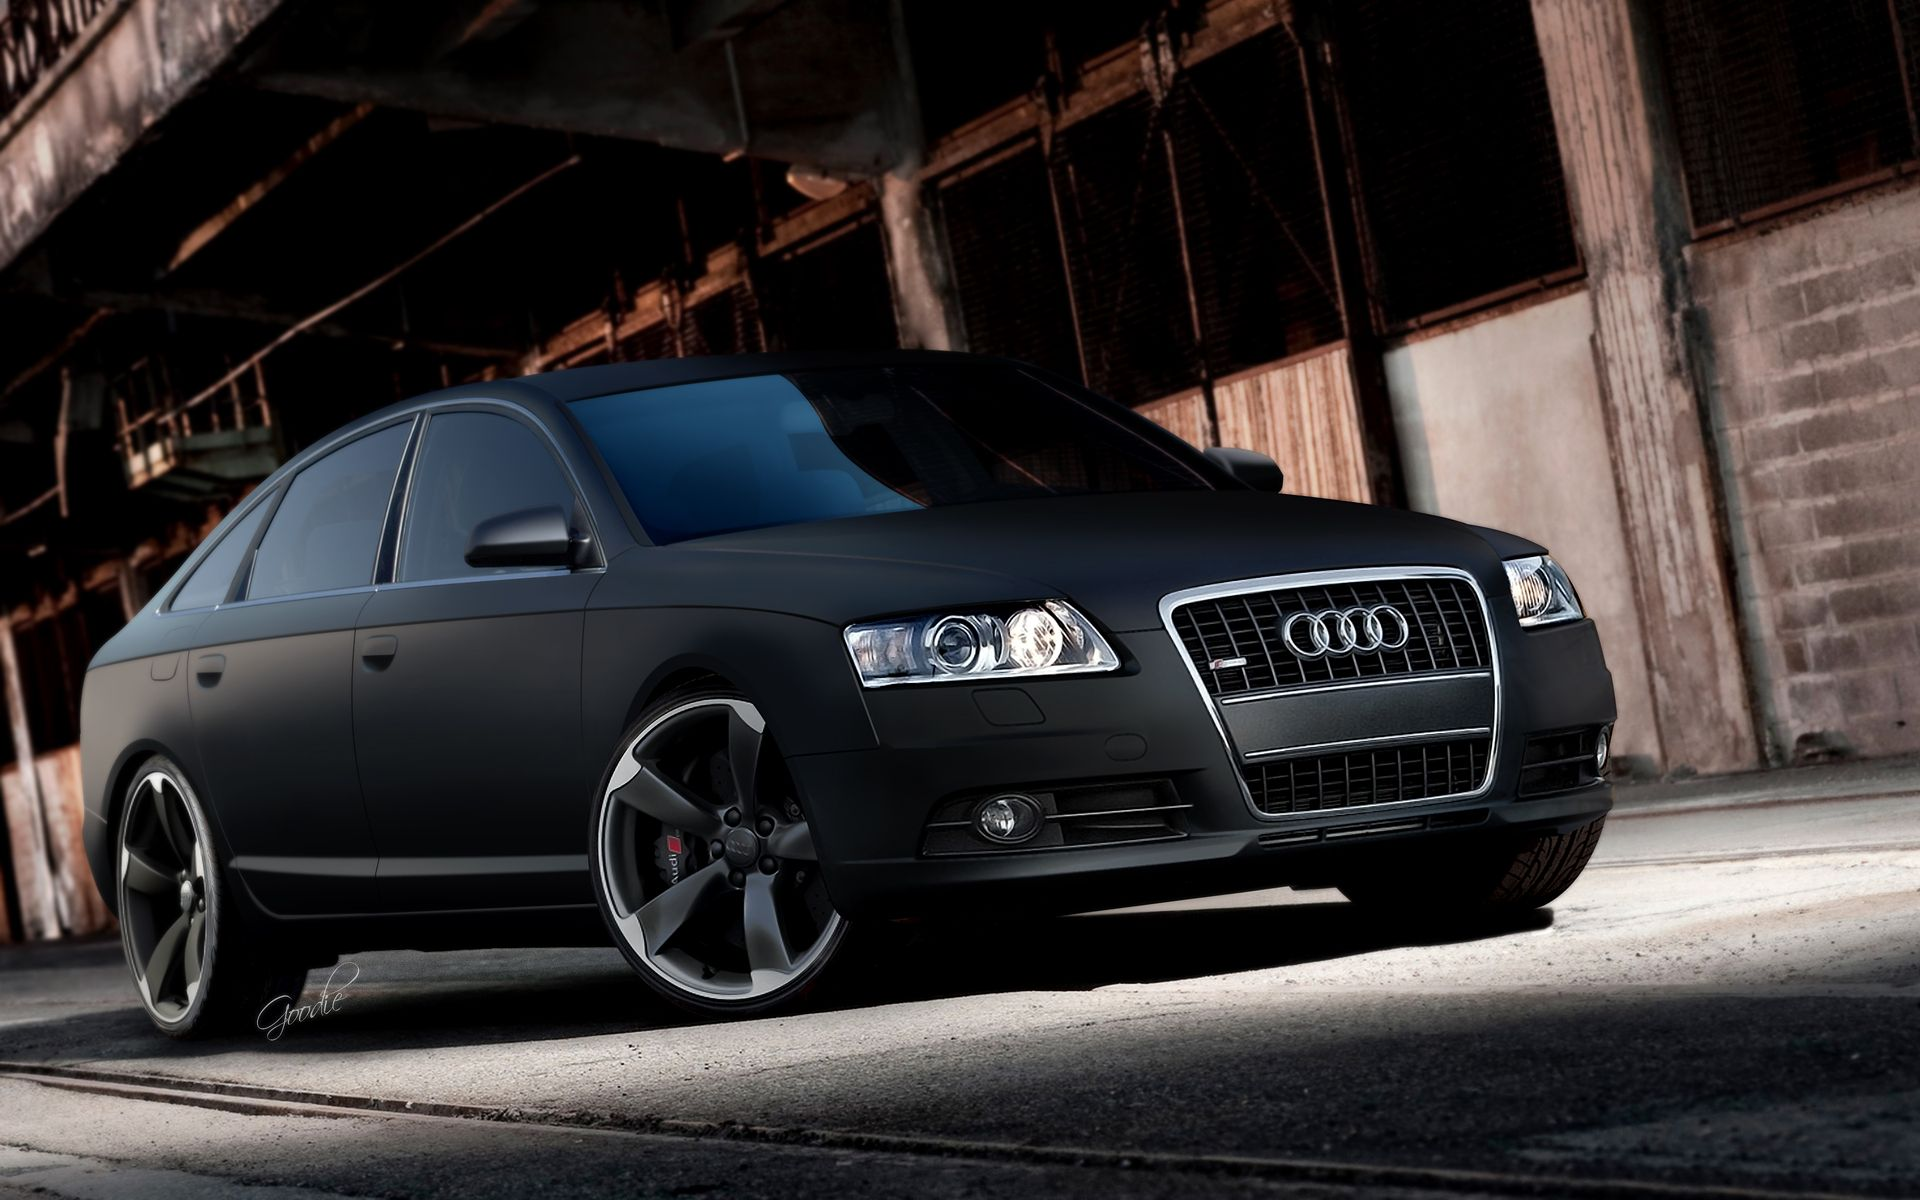 1920x1200 - Audi A6 Wallpapers 25